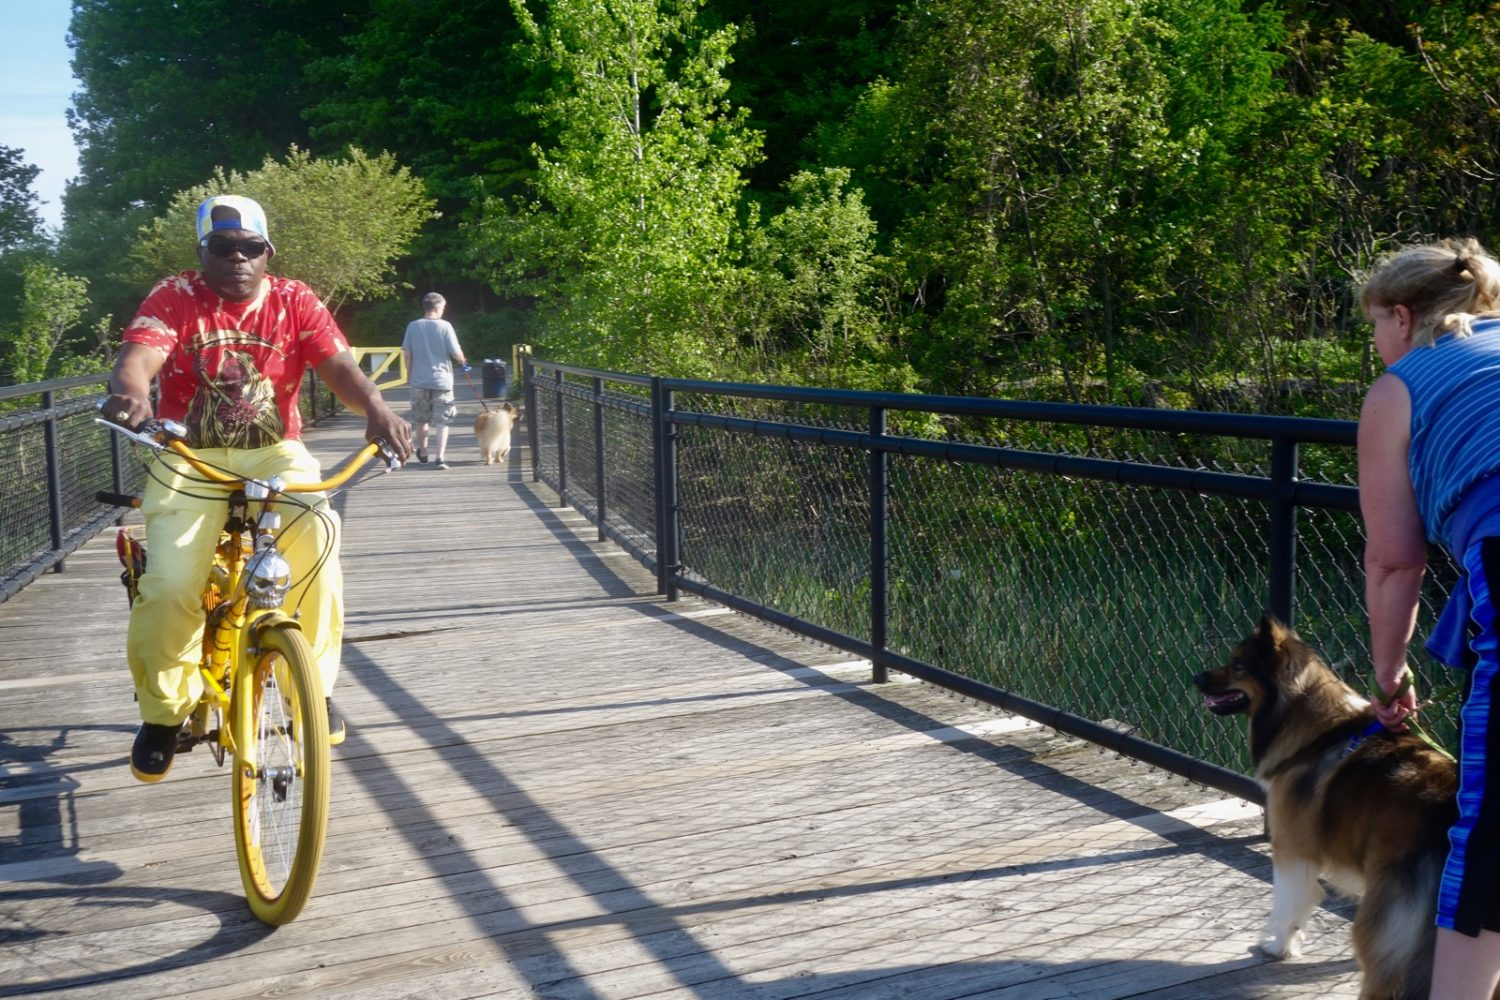 Man on yellow bike at Turning Point Park in Rochester, New York